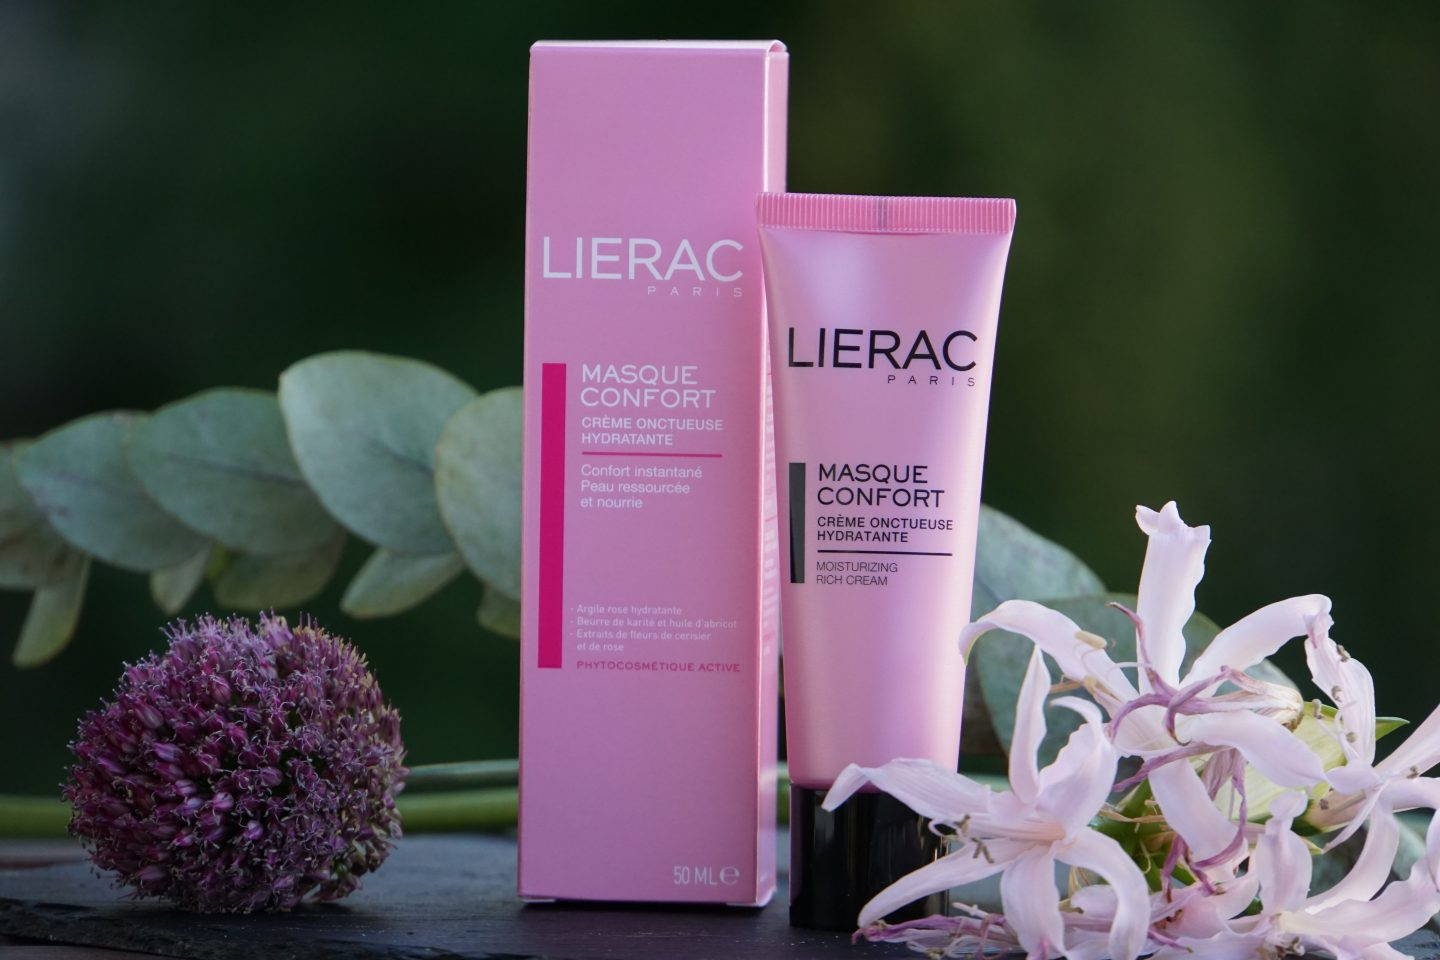 Lierac Masque confort von New Pharma